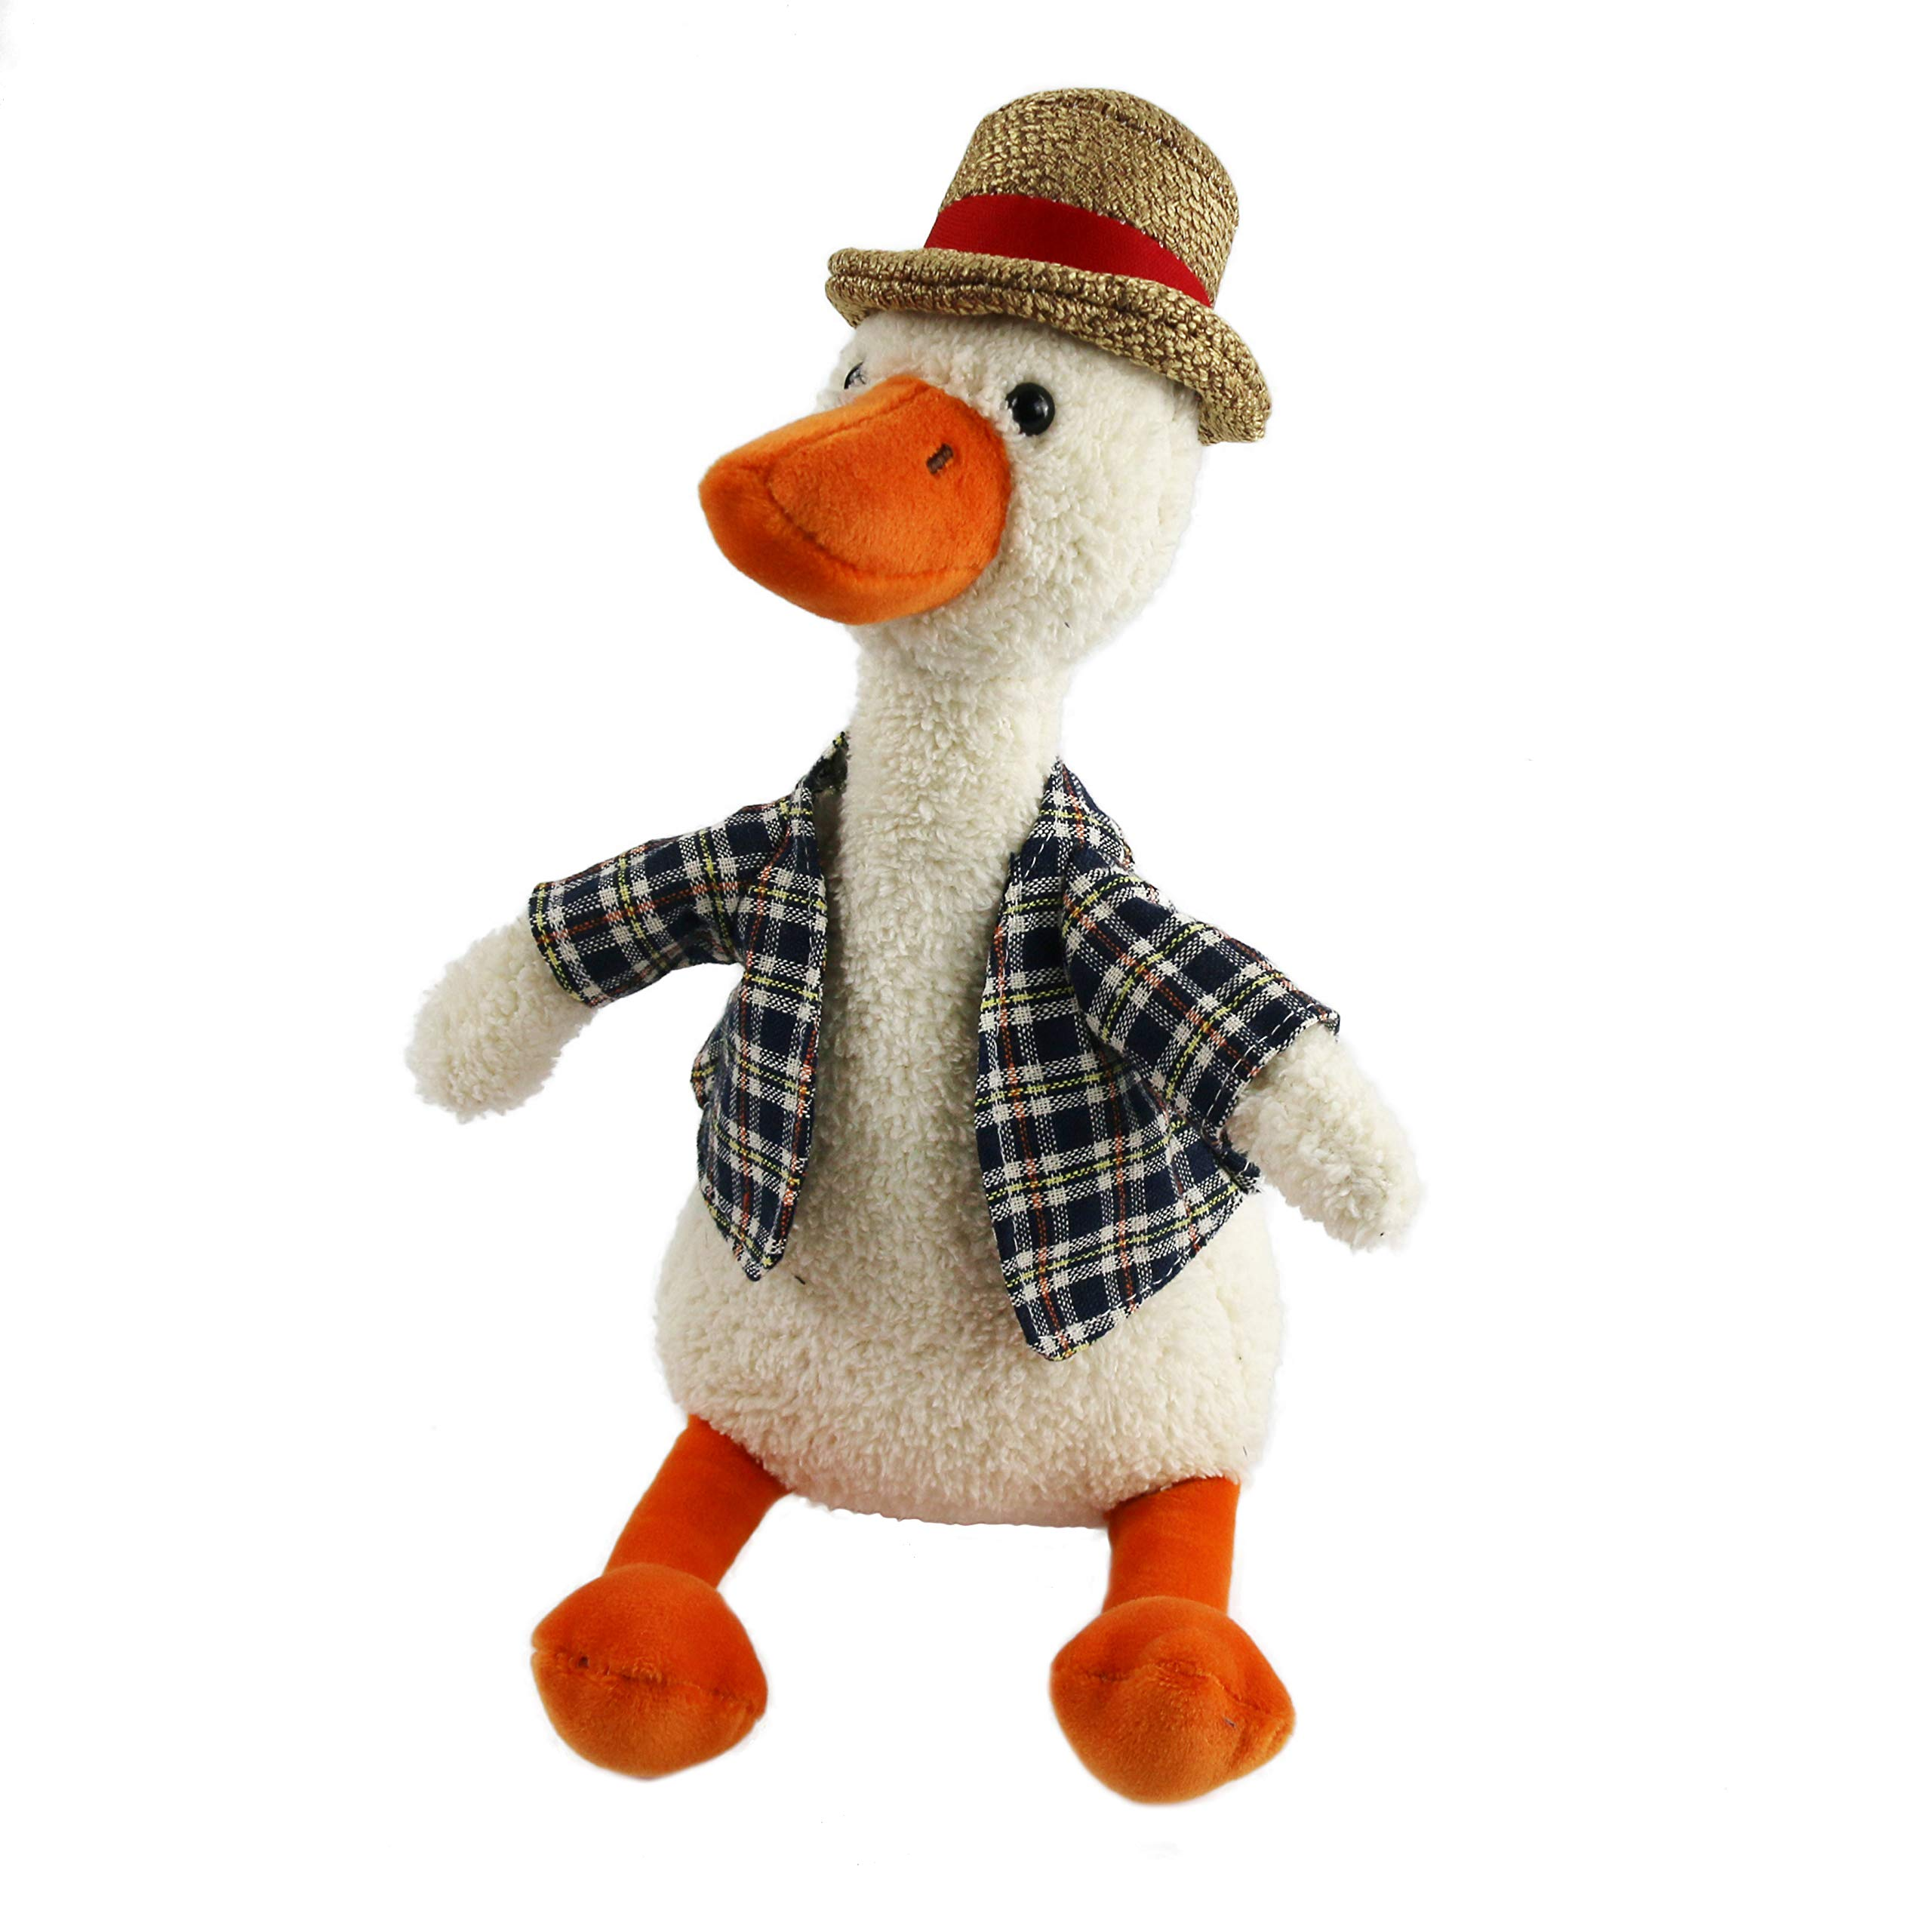 Houwsbaby Plush Duck in Plaid Shirt Plush Toy Totter Stuffed Animal with Hat, Adorable Gift for Kids Boys Girls on Holiday Christmas Birthday, Beige, 11''